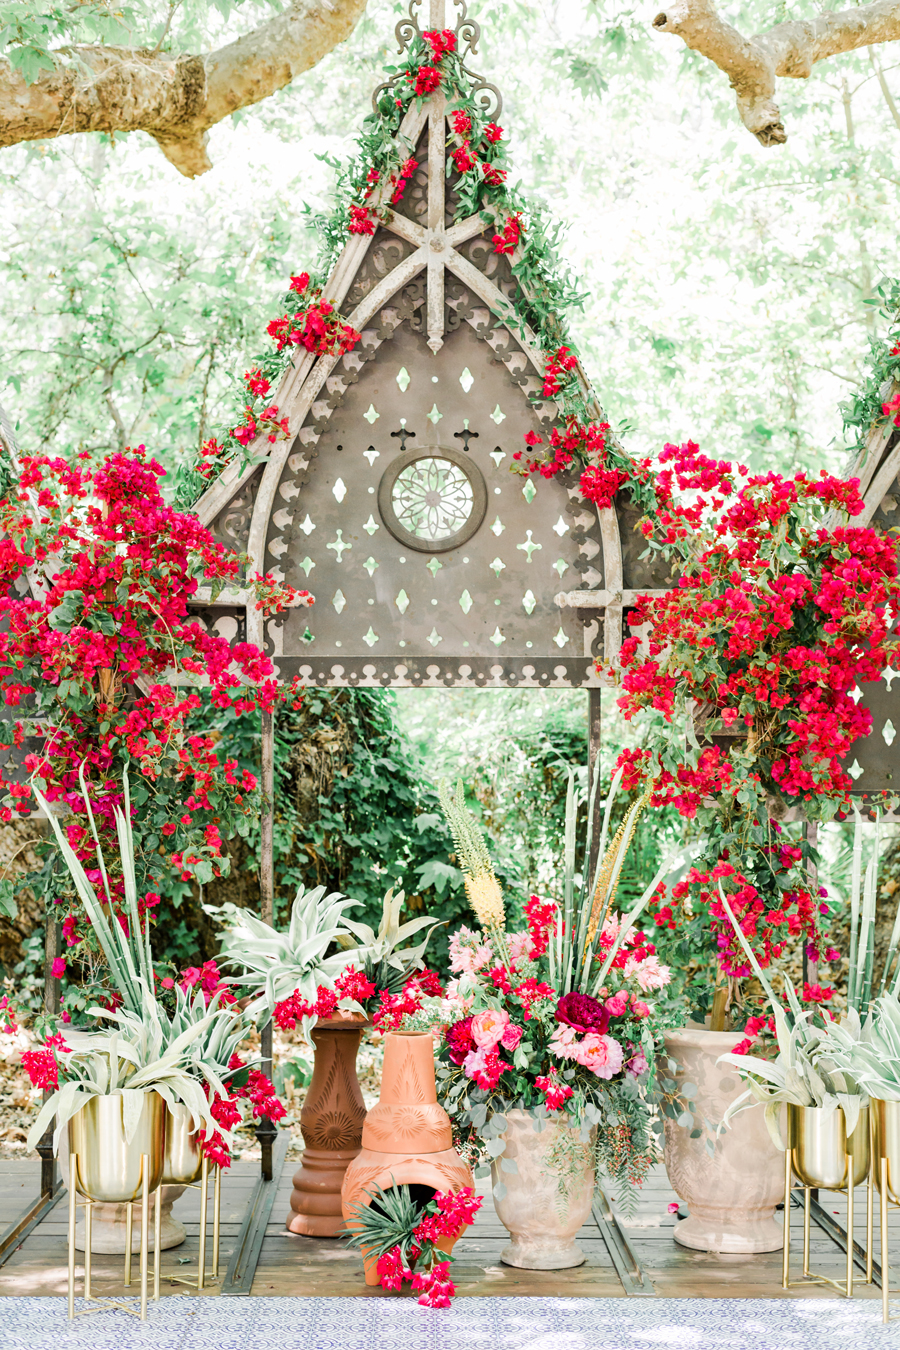 pink and red flowers accent greenery covering cathedral structure